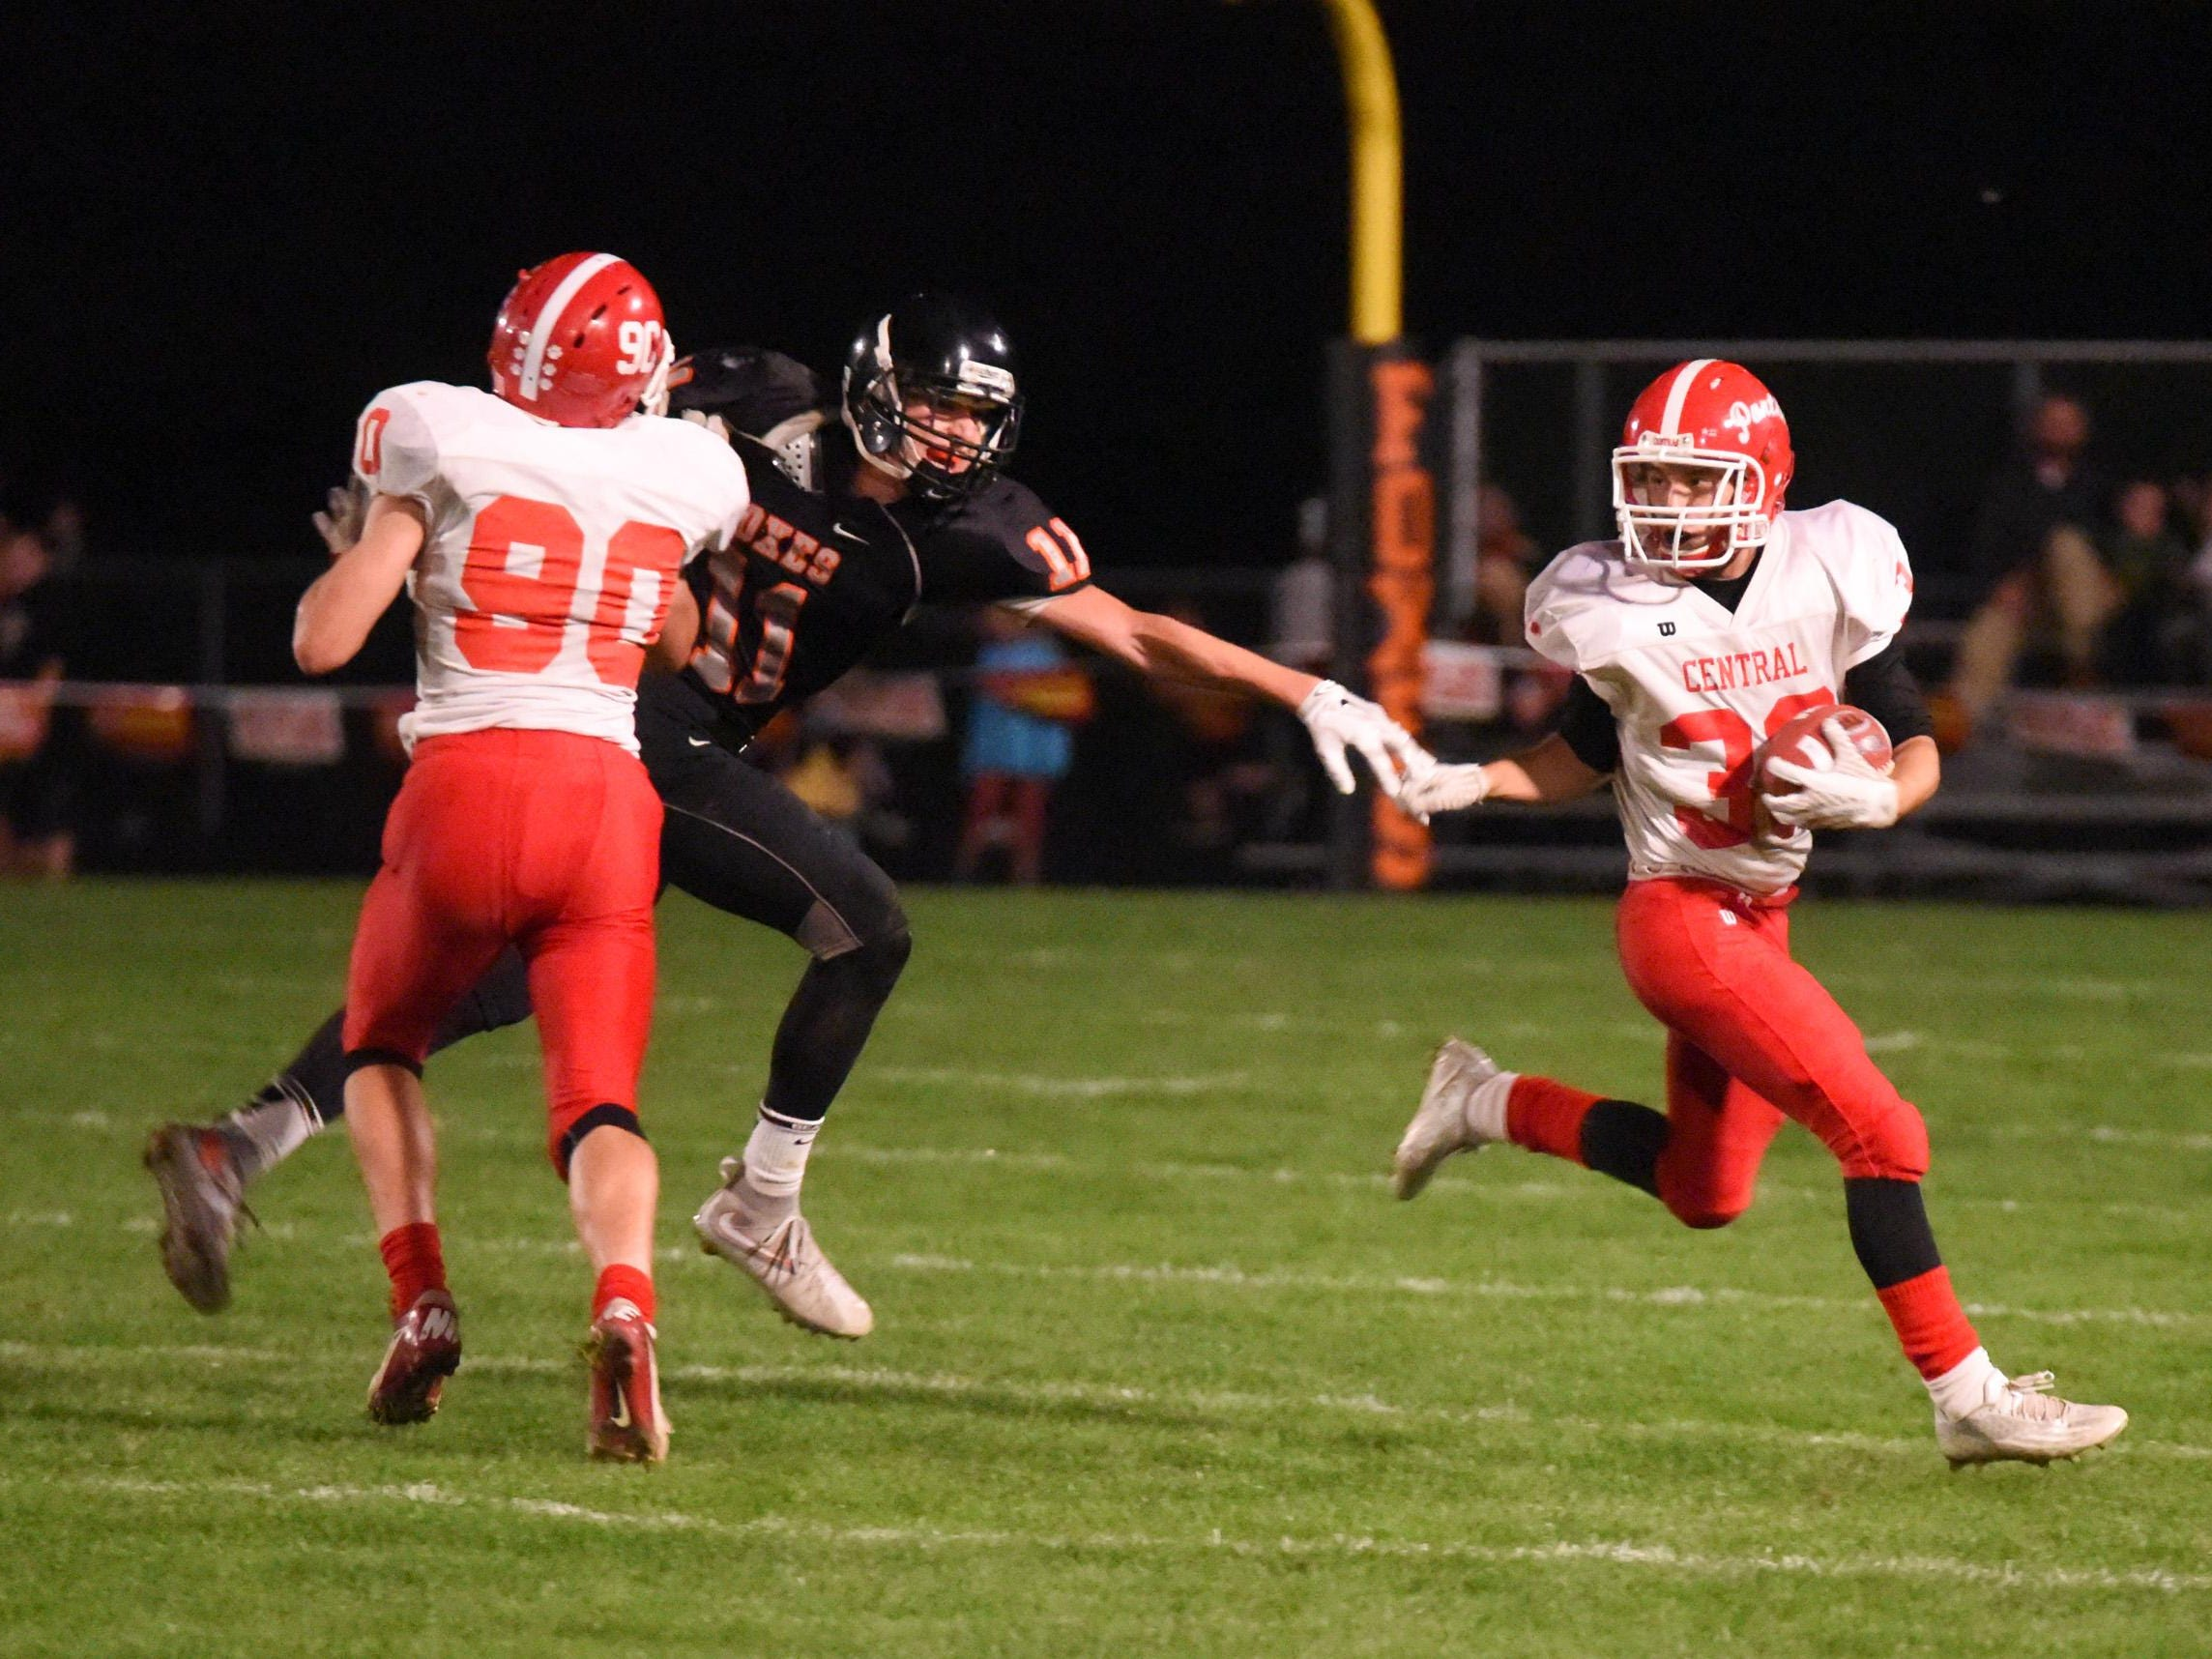 On Oct. 16 Silverton and Central high schools battled in Silverton to a 34-21 victory for the Panthers.